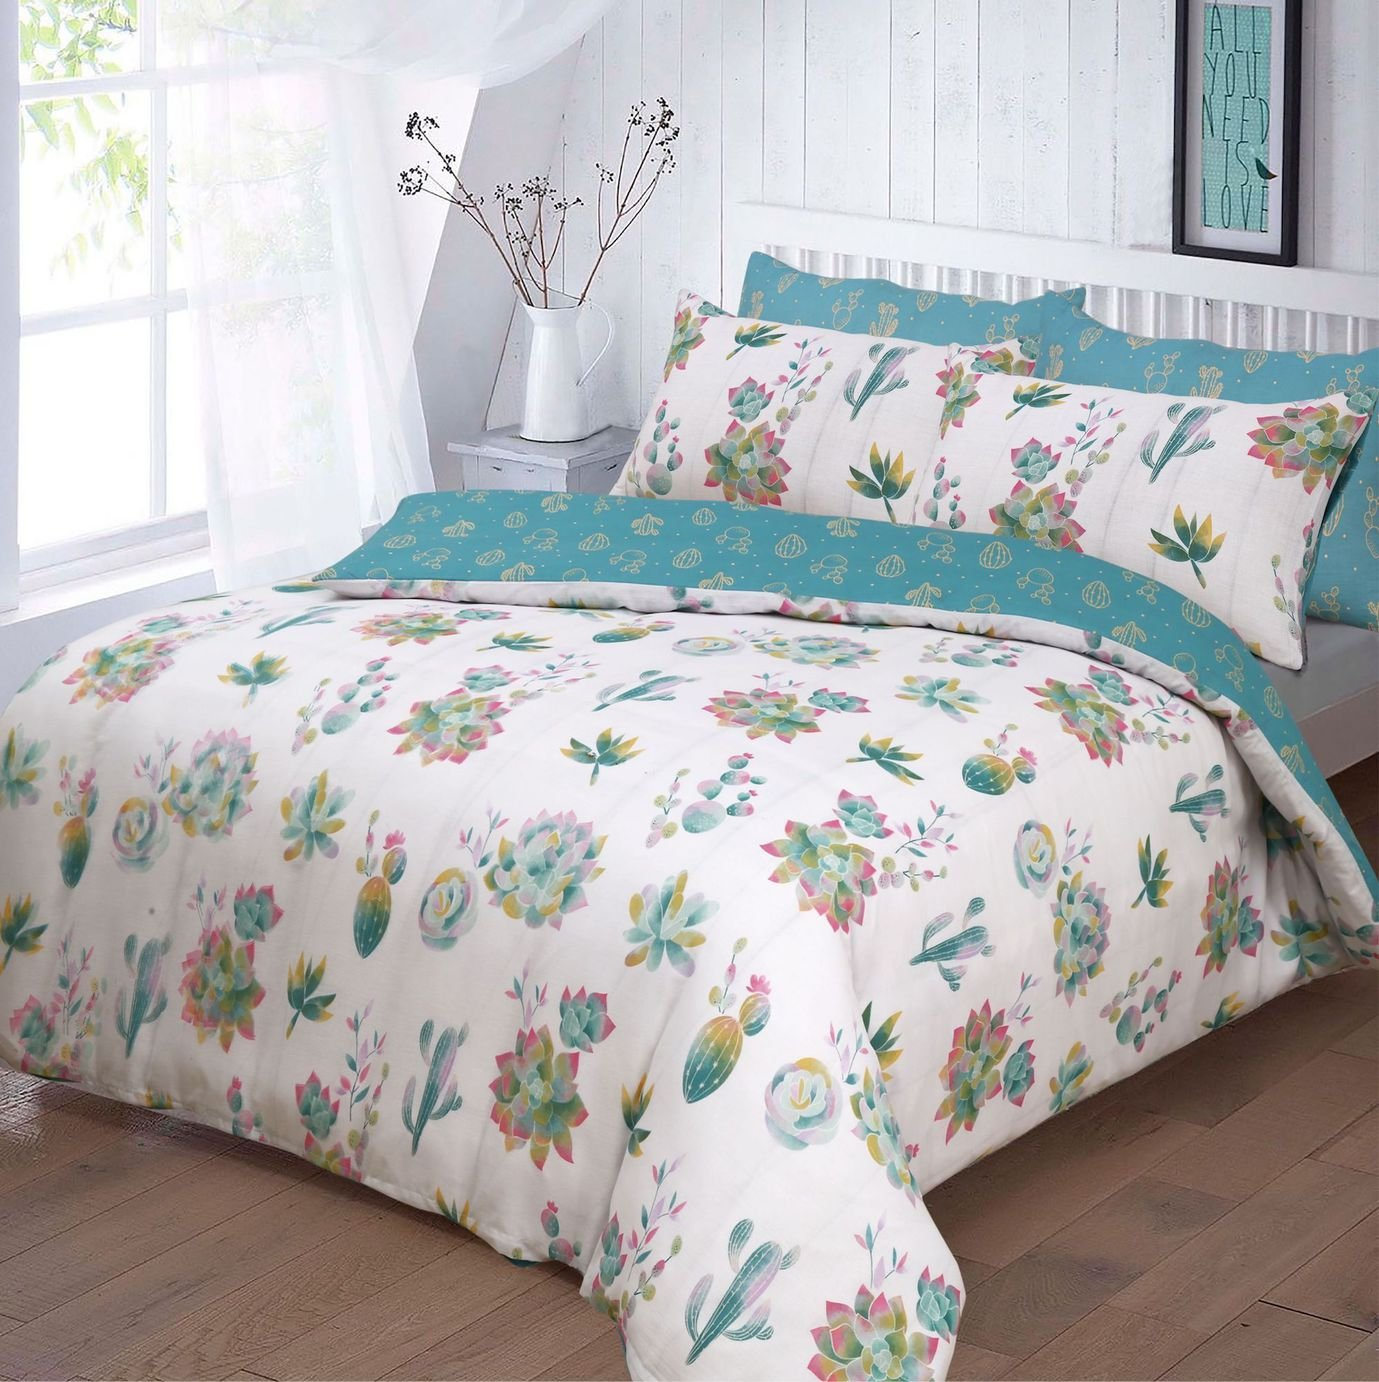 Argos Home Summer Cactus Bedding Set - Single